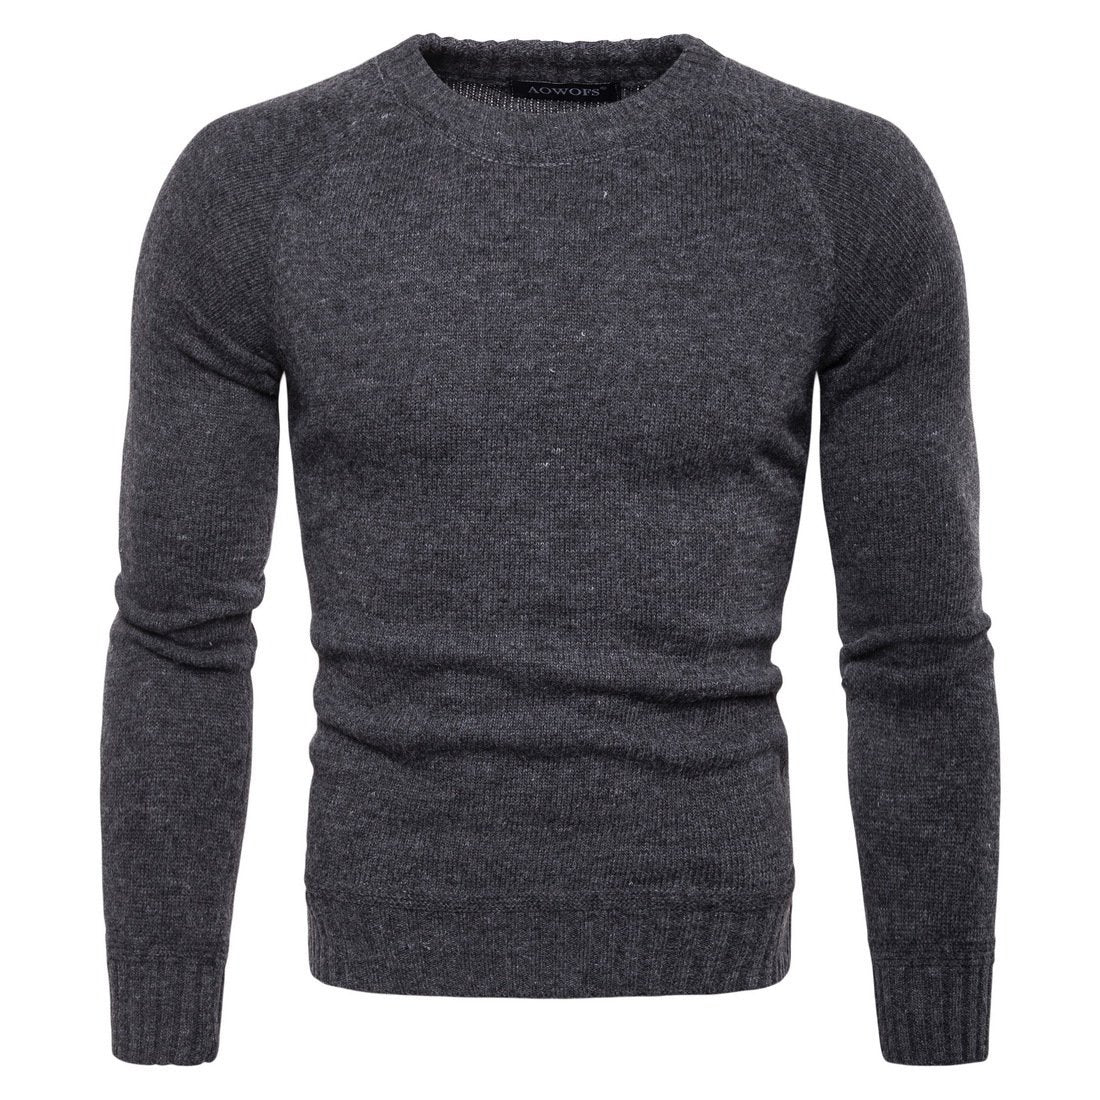 Mens casual knitted bottoming shirt